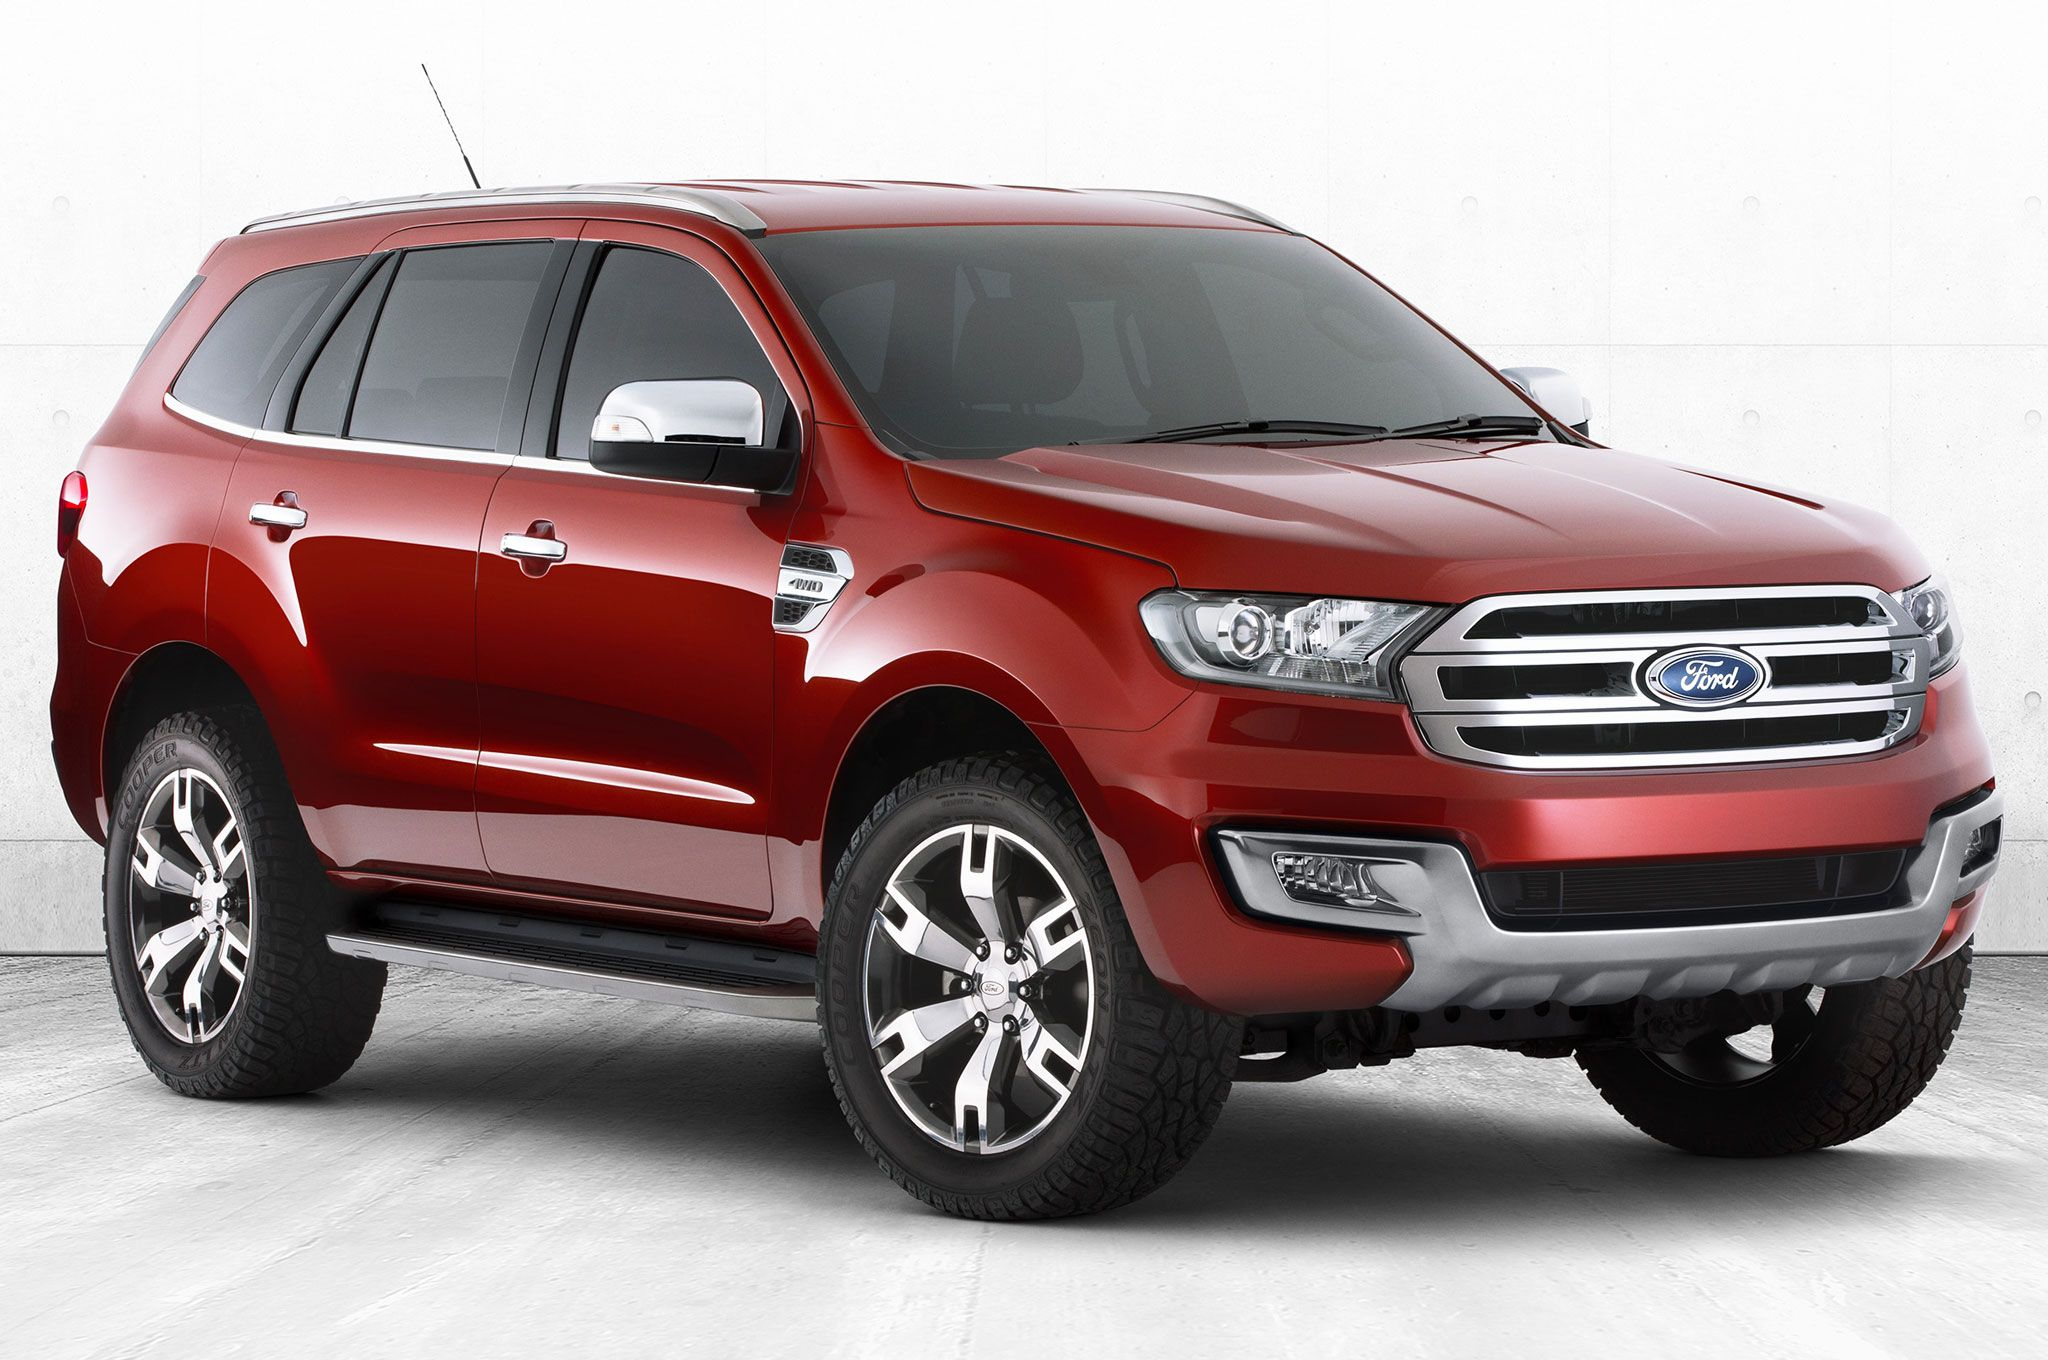 Ford Everest Concept Suv Front Side View With Images Ford